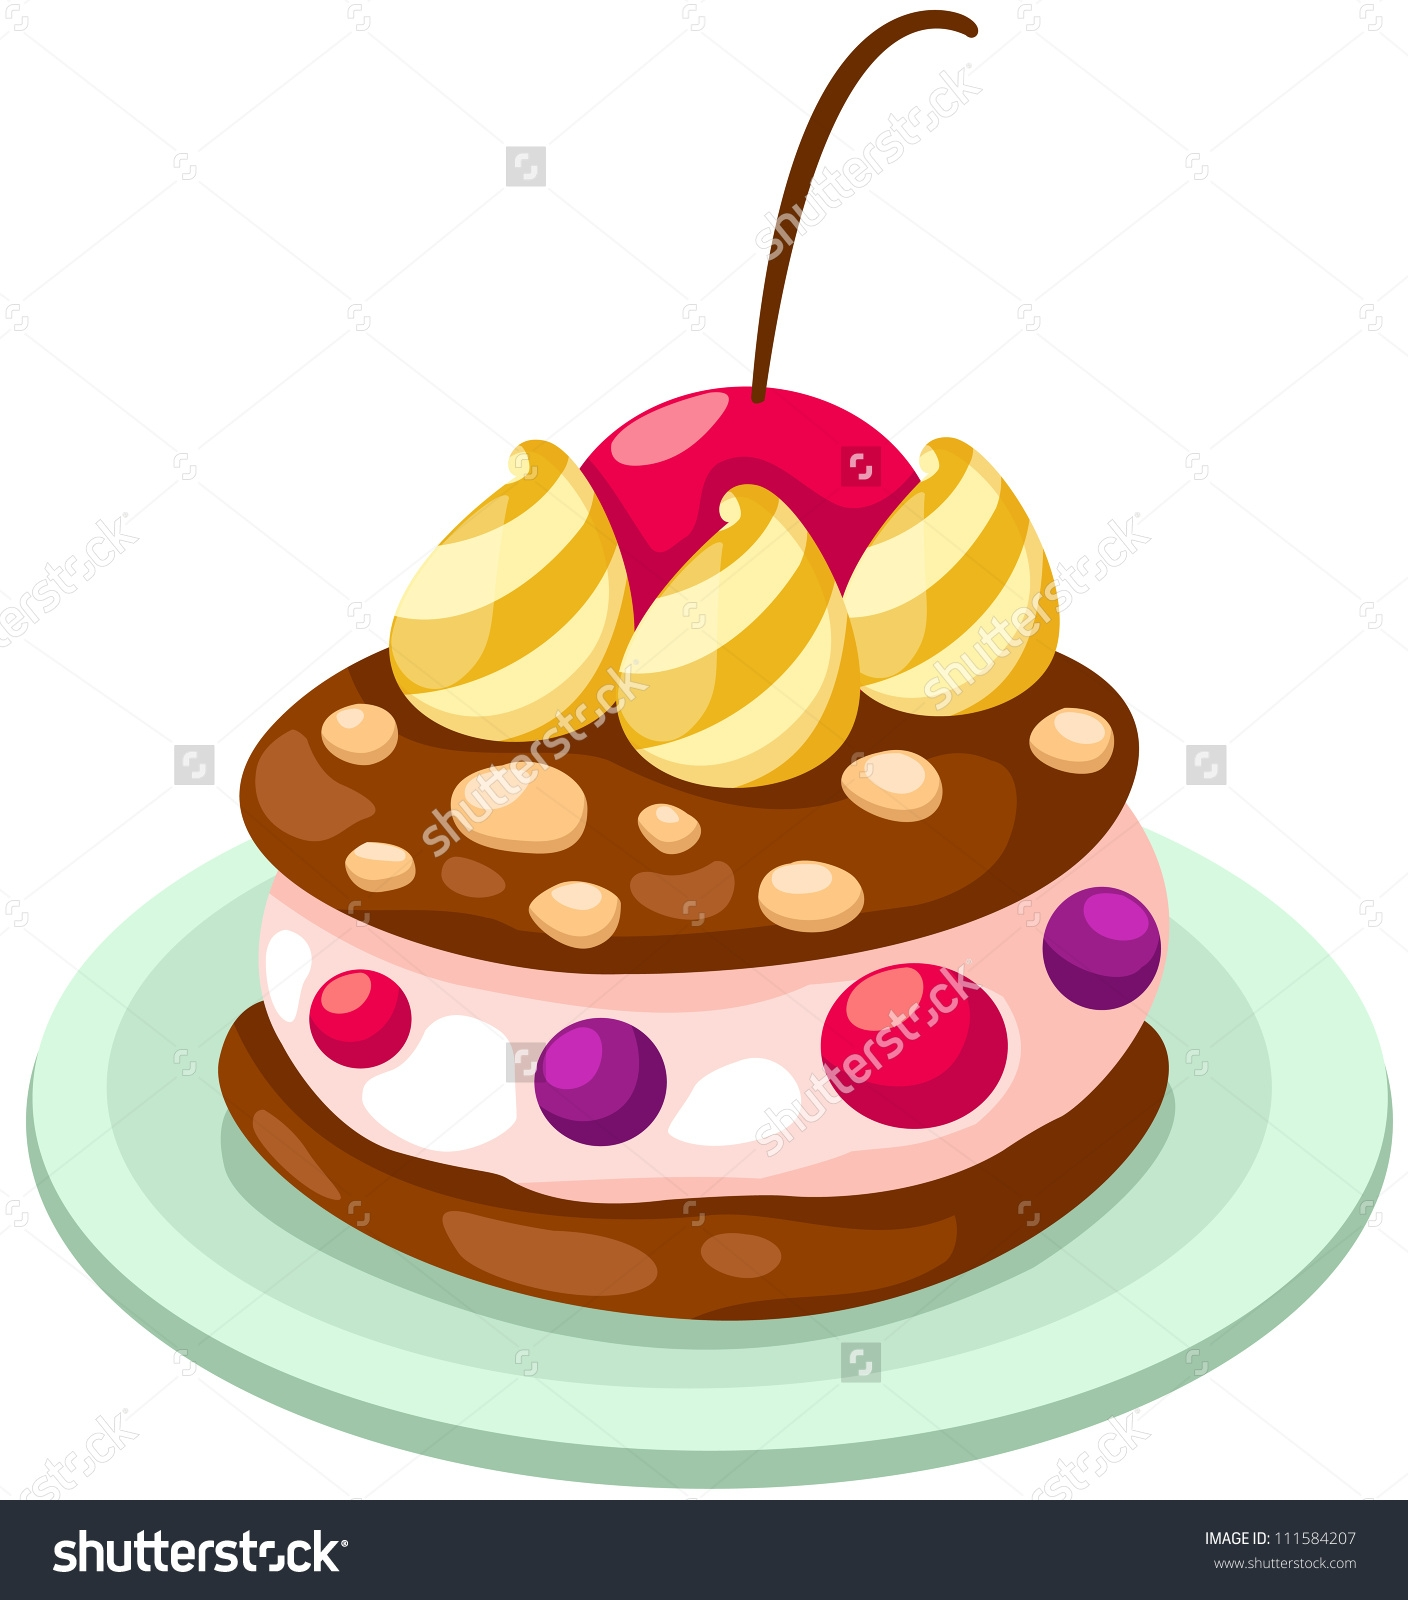 Delicious Cake Clipart : ice cream and cake clipart - Clipground